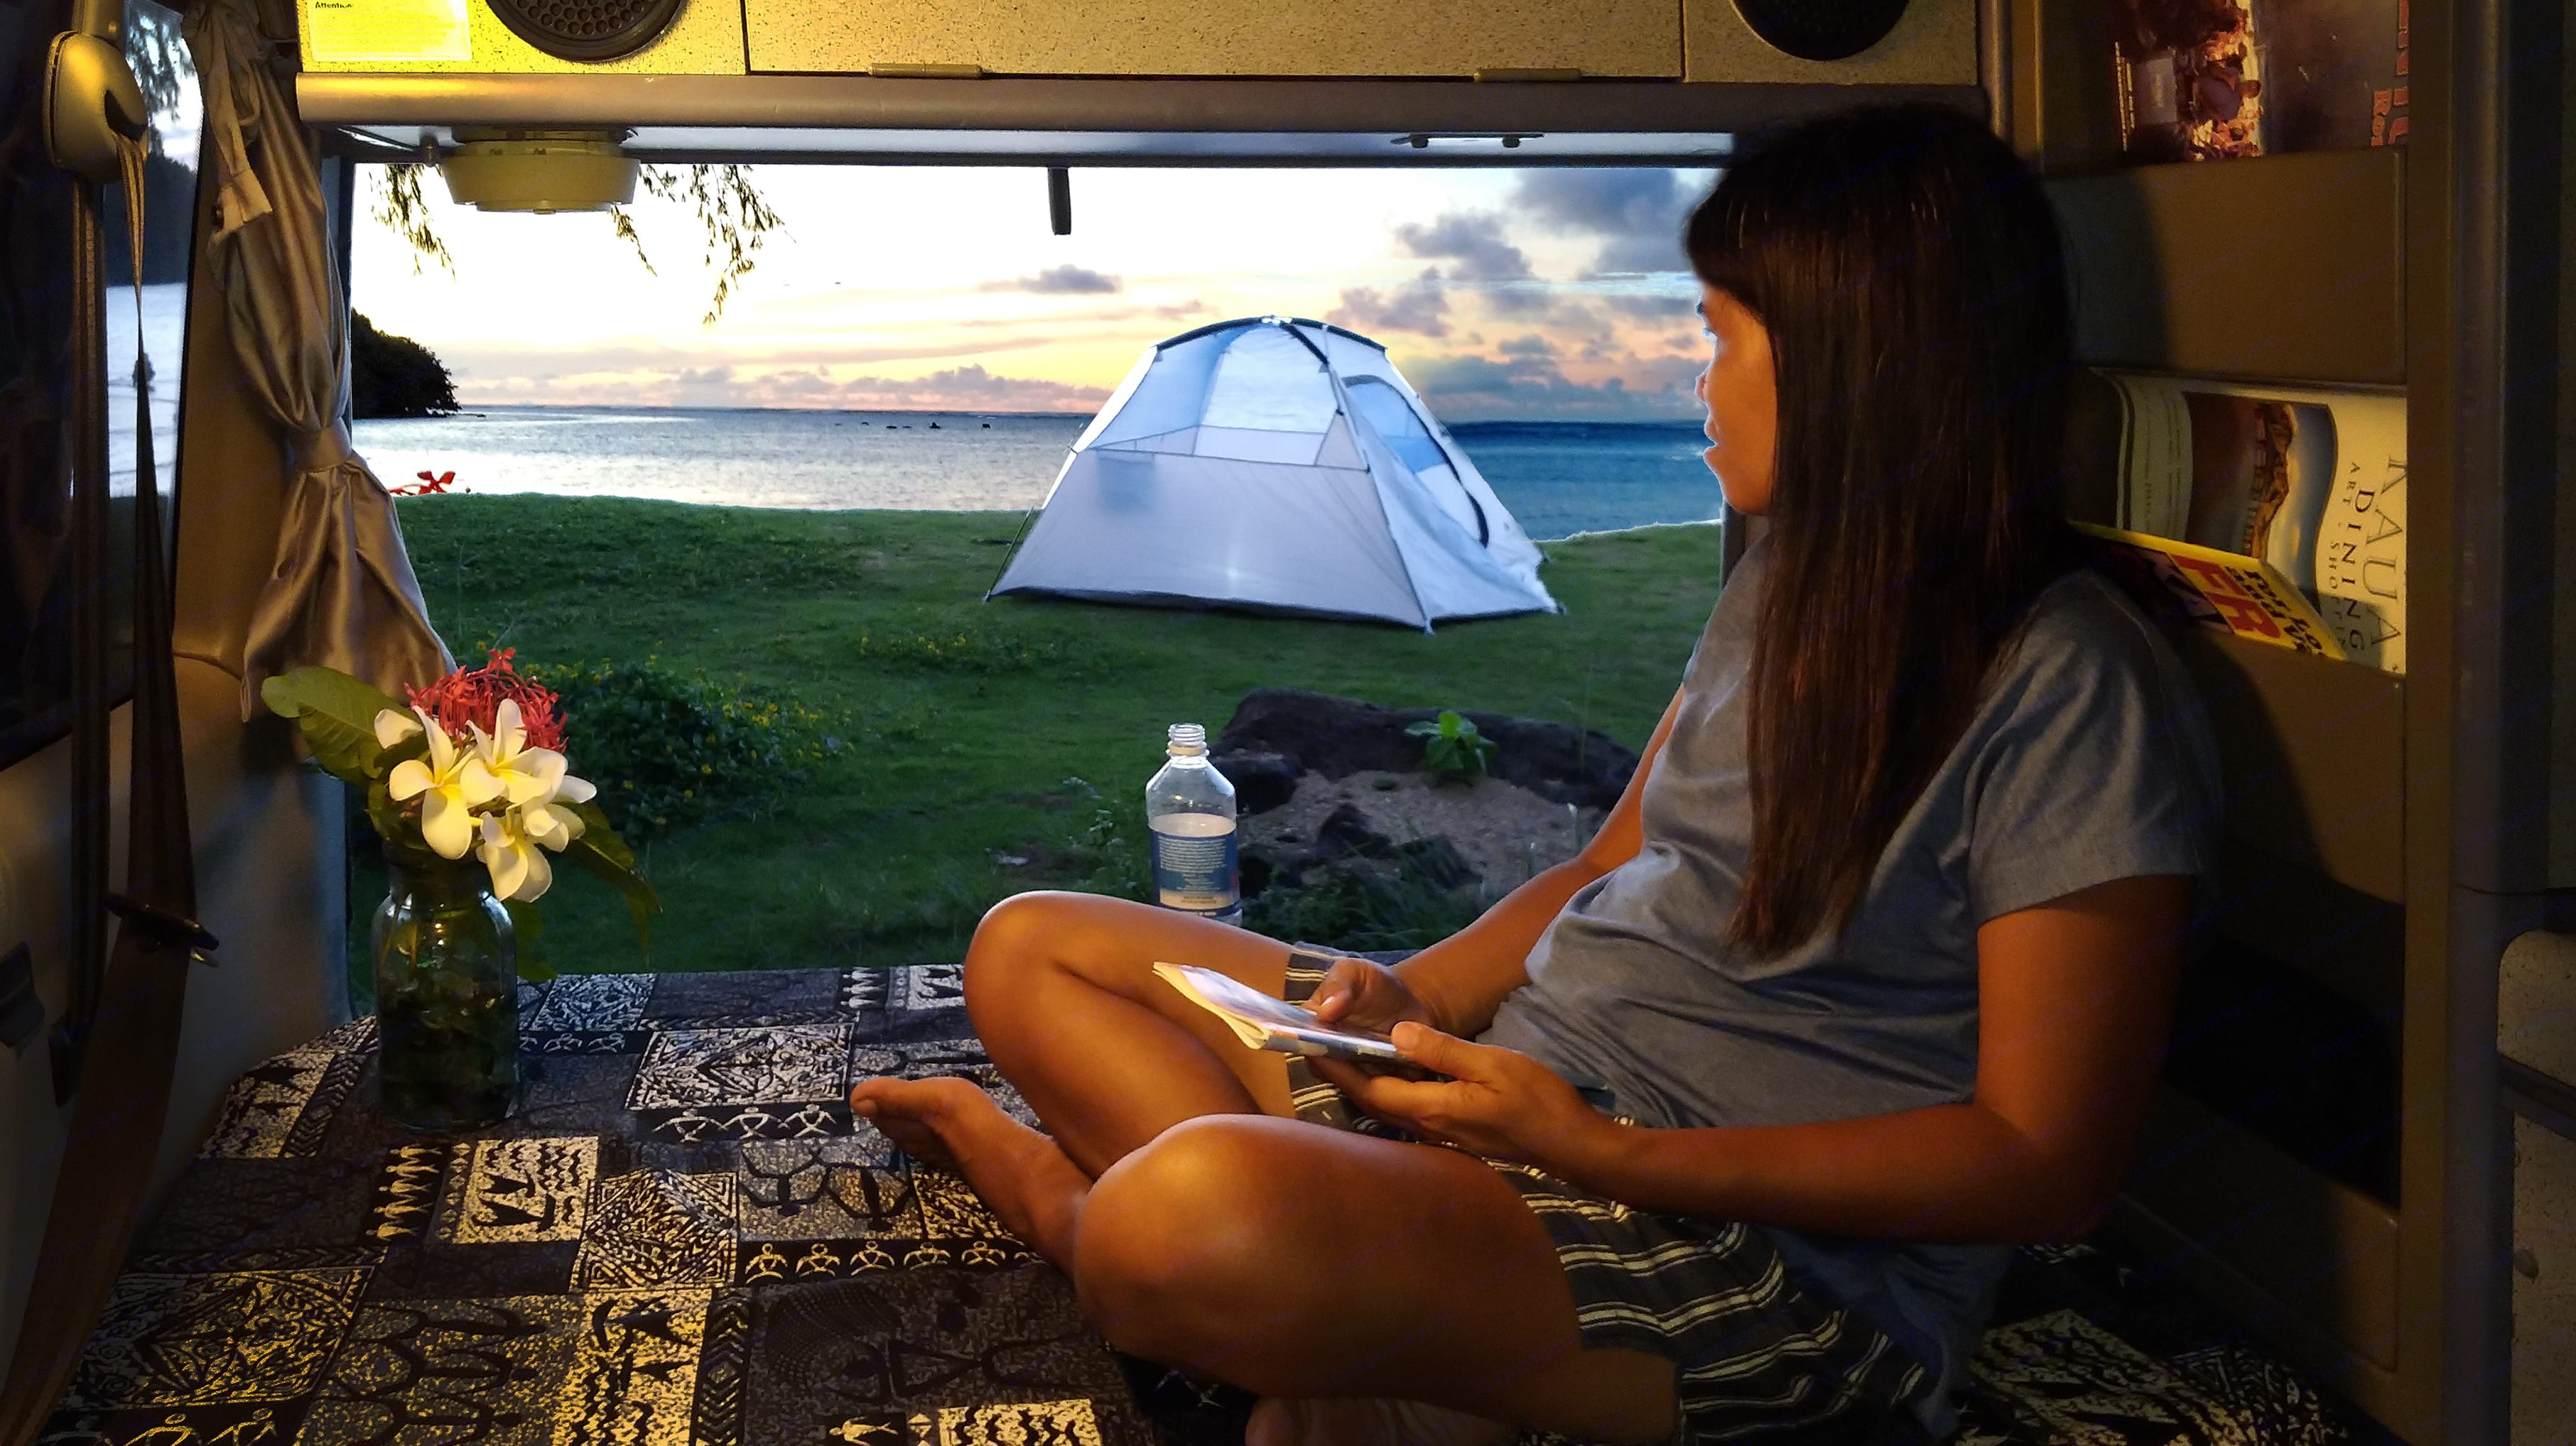 Complimentary tent with the van. If someone wants some privacy.. Volkswagen Westfalia 1992